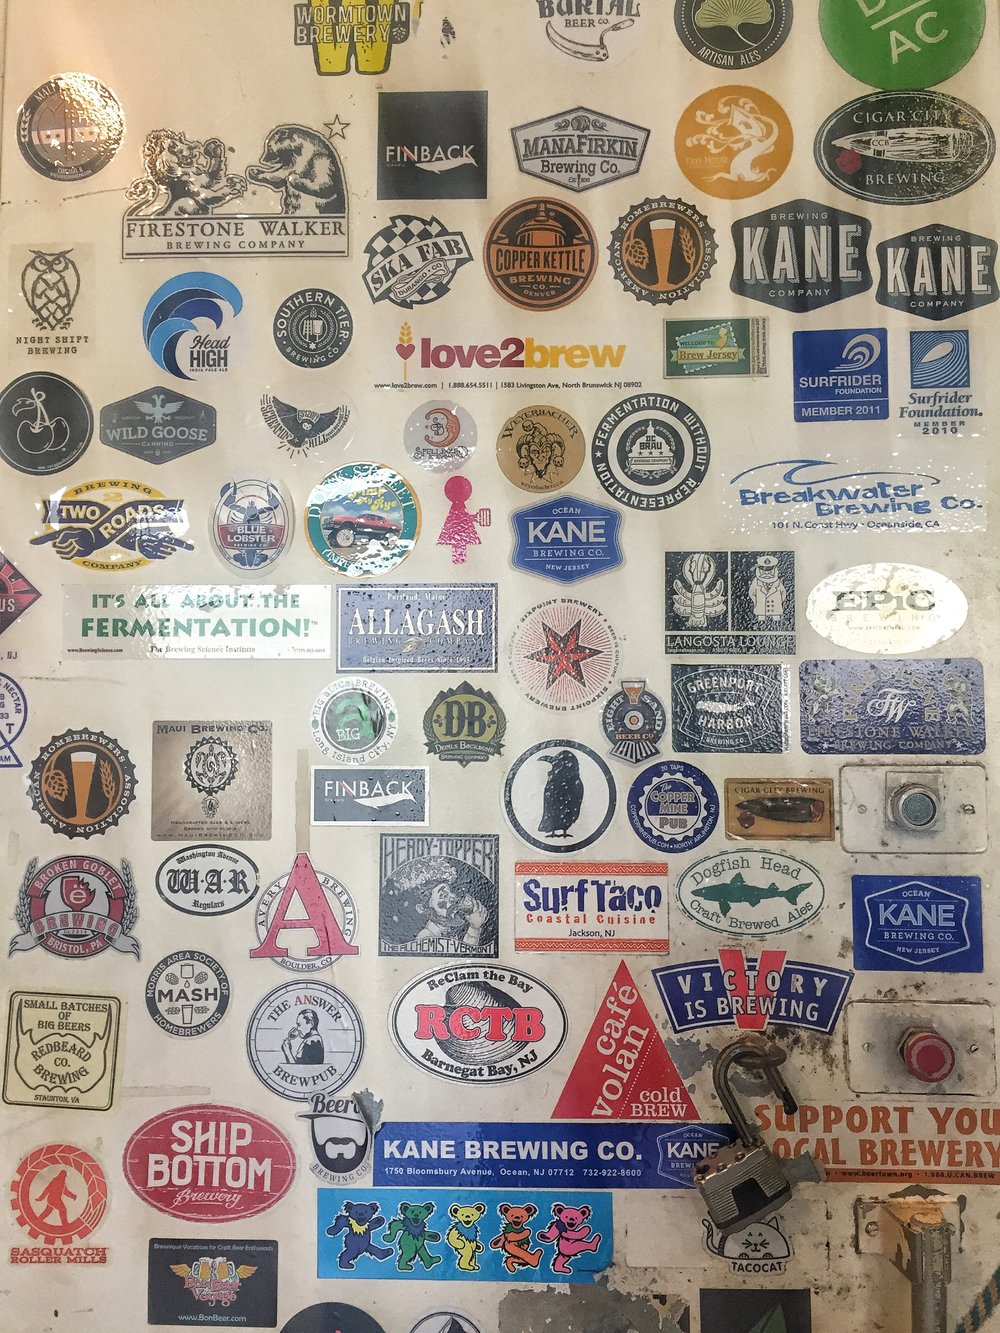 Stickers galore because even in my 30's, I still have this need to want tocollect them.